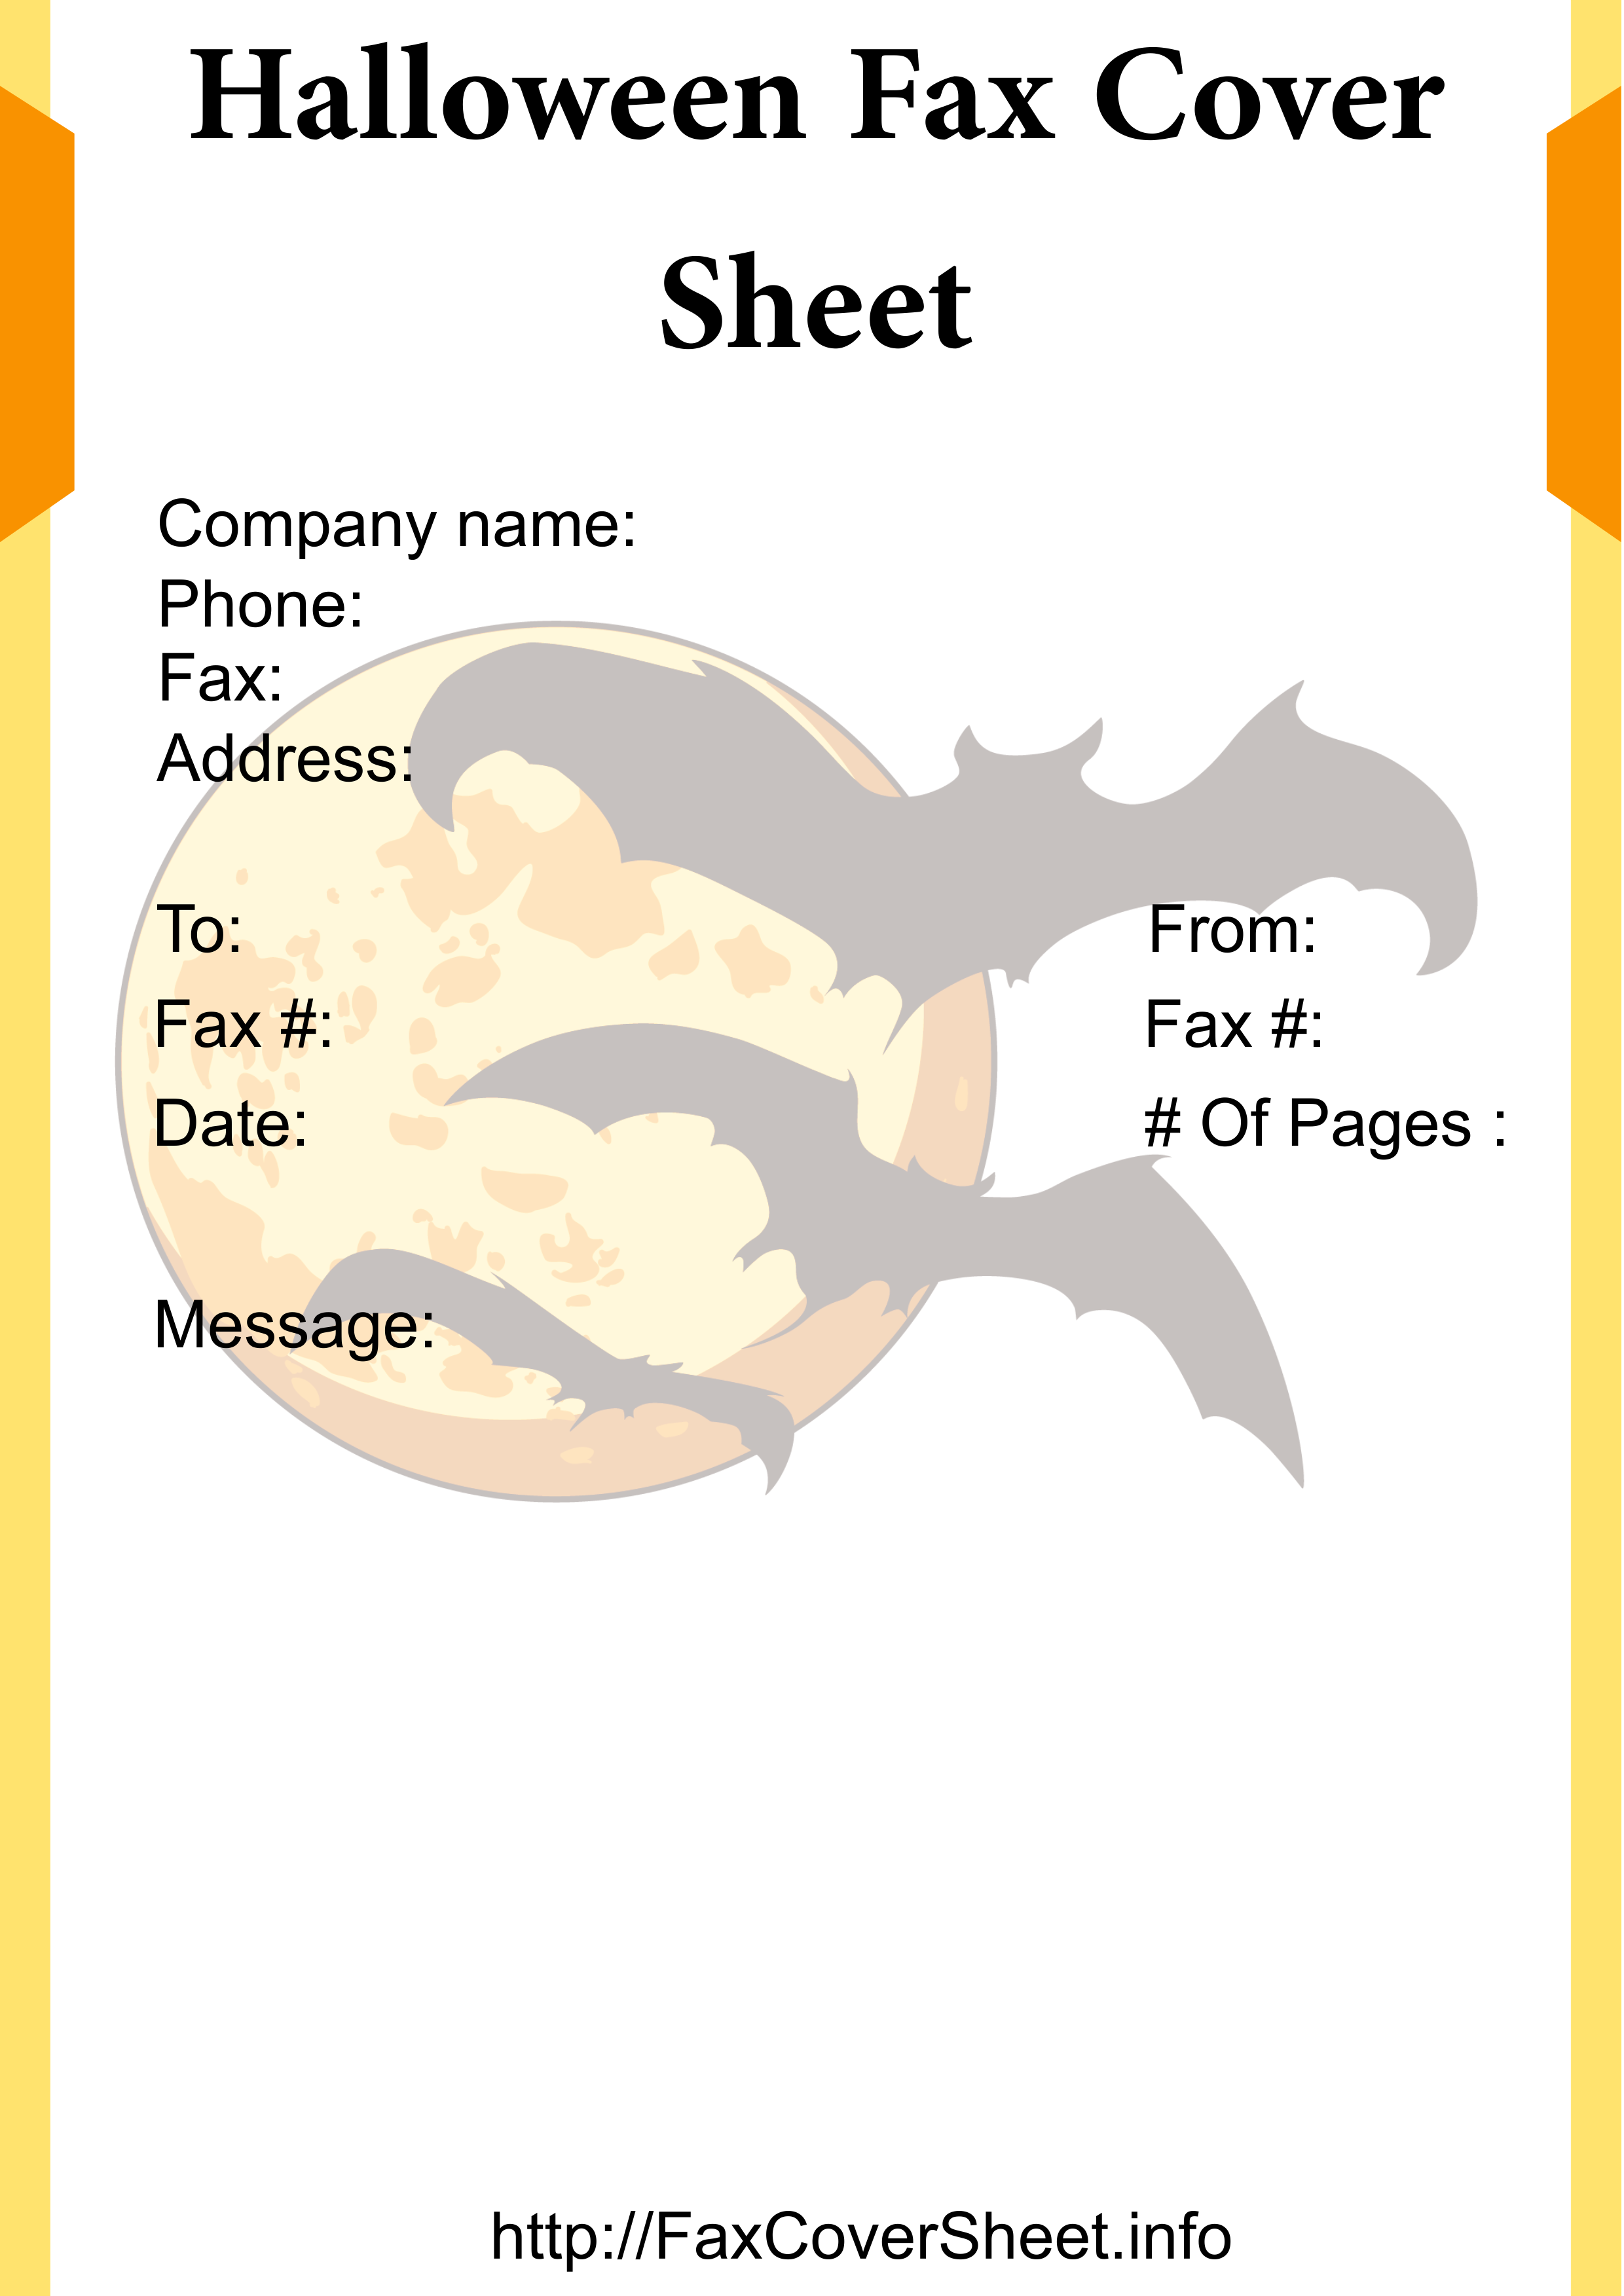 Halloween Fax Cover Sheet Template